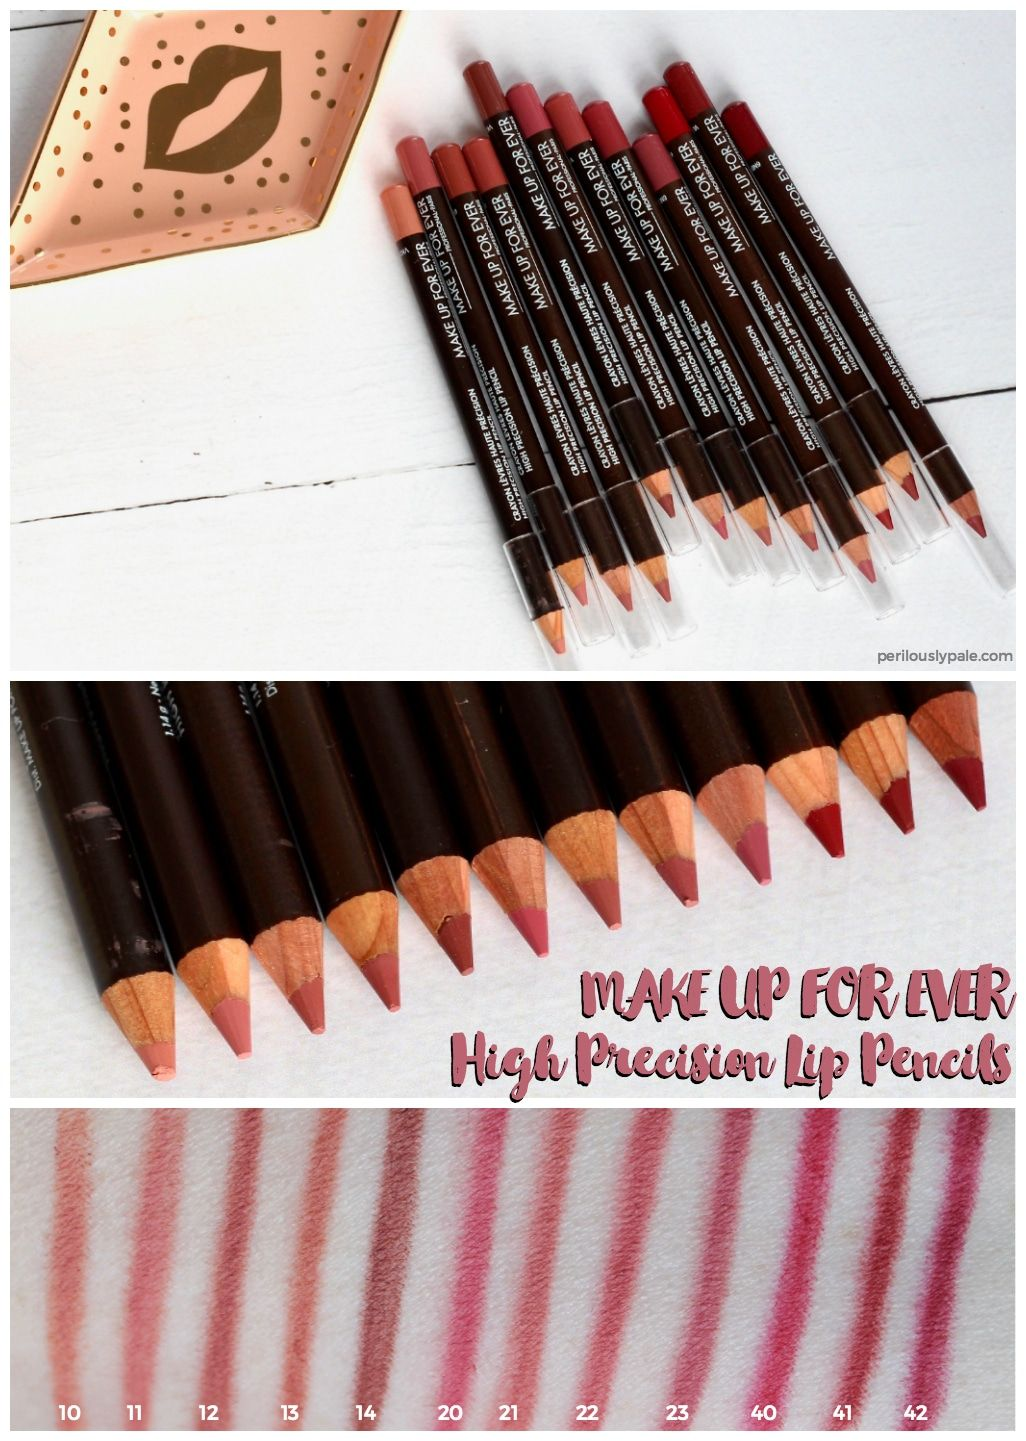 MAKE UP FOR EVER High Precision Lip Liners Review